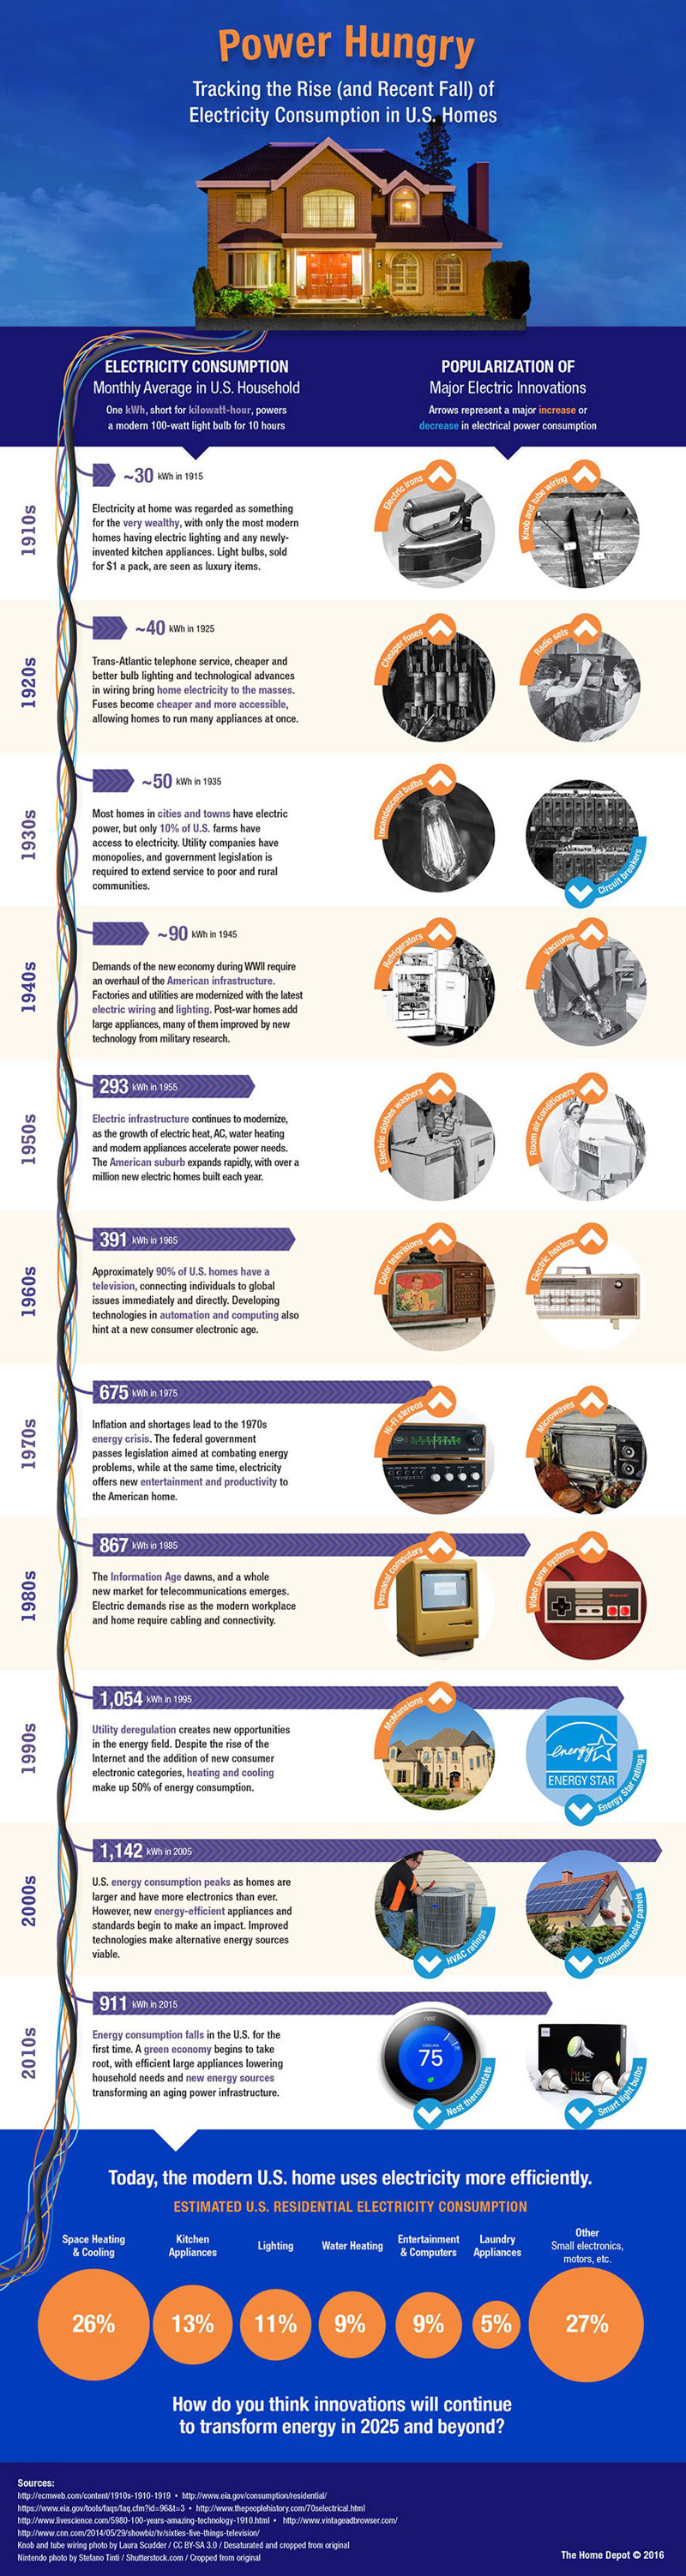 History-of-Electricity-Consumption-Infographic